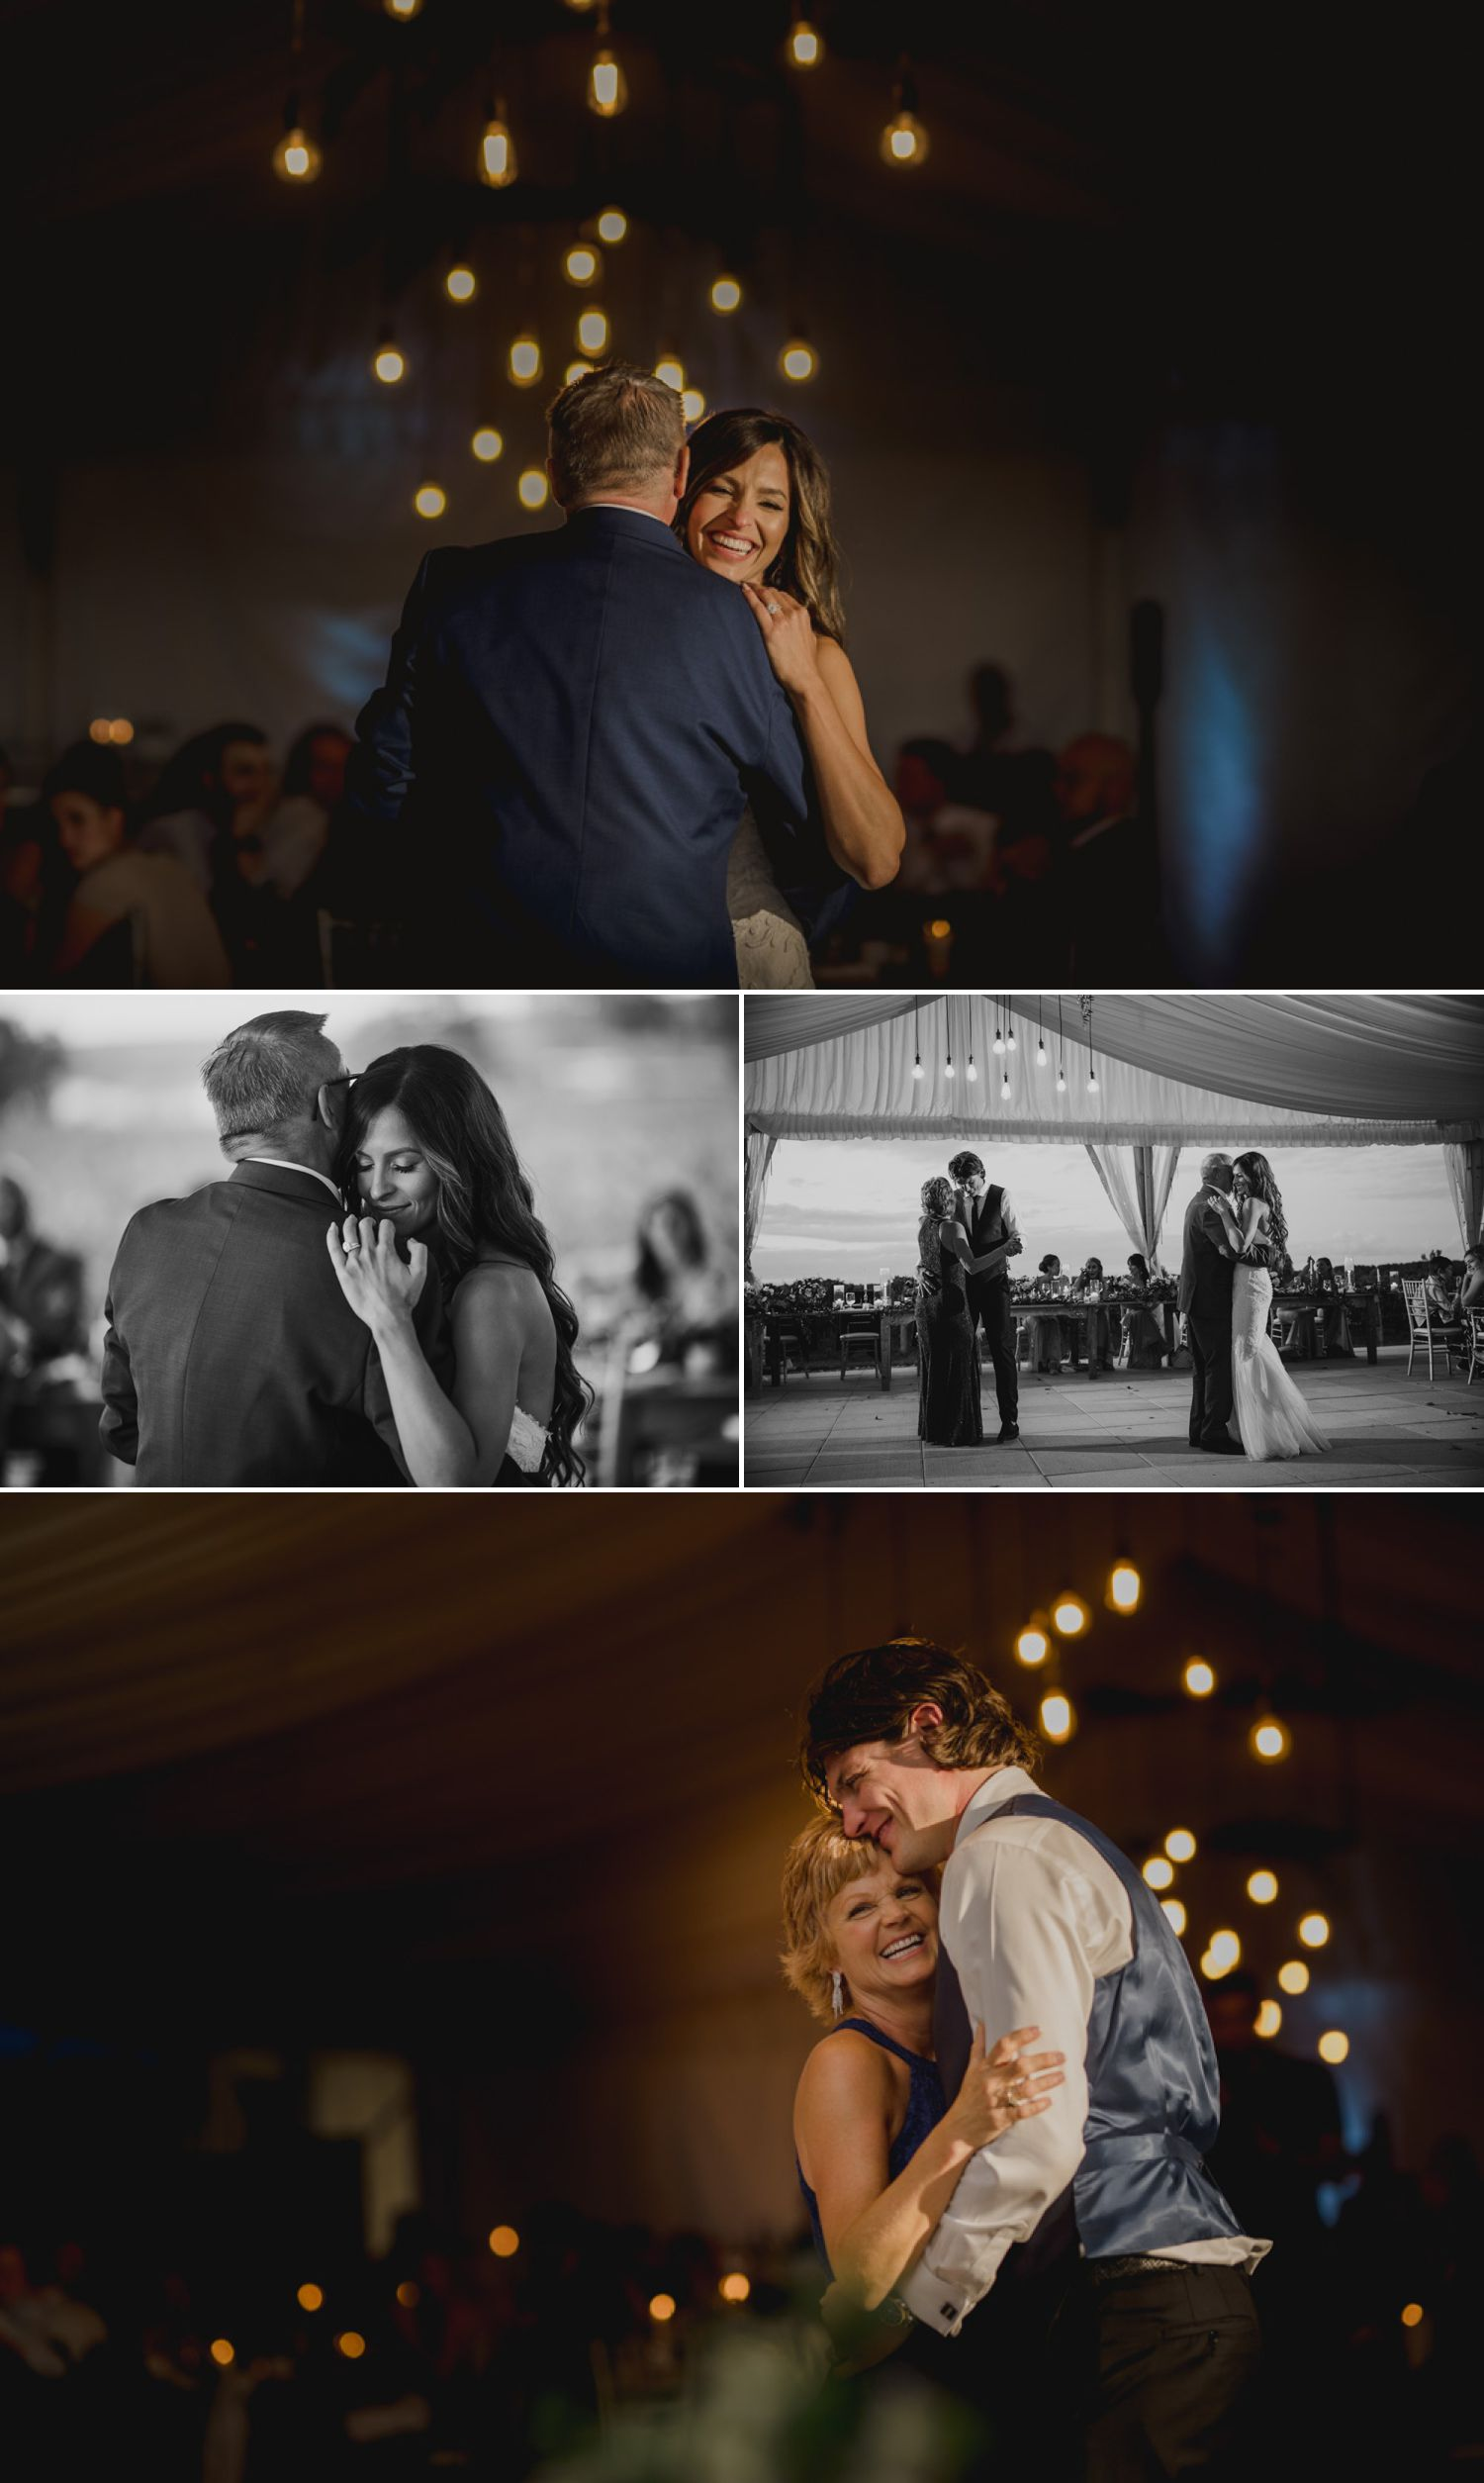 The bride and groom during their first dances with their parents at their Ravine Vineyard Estate Winery wedding reception